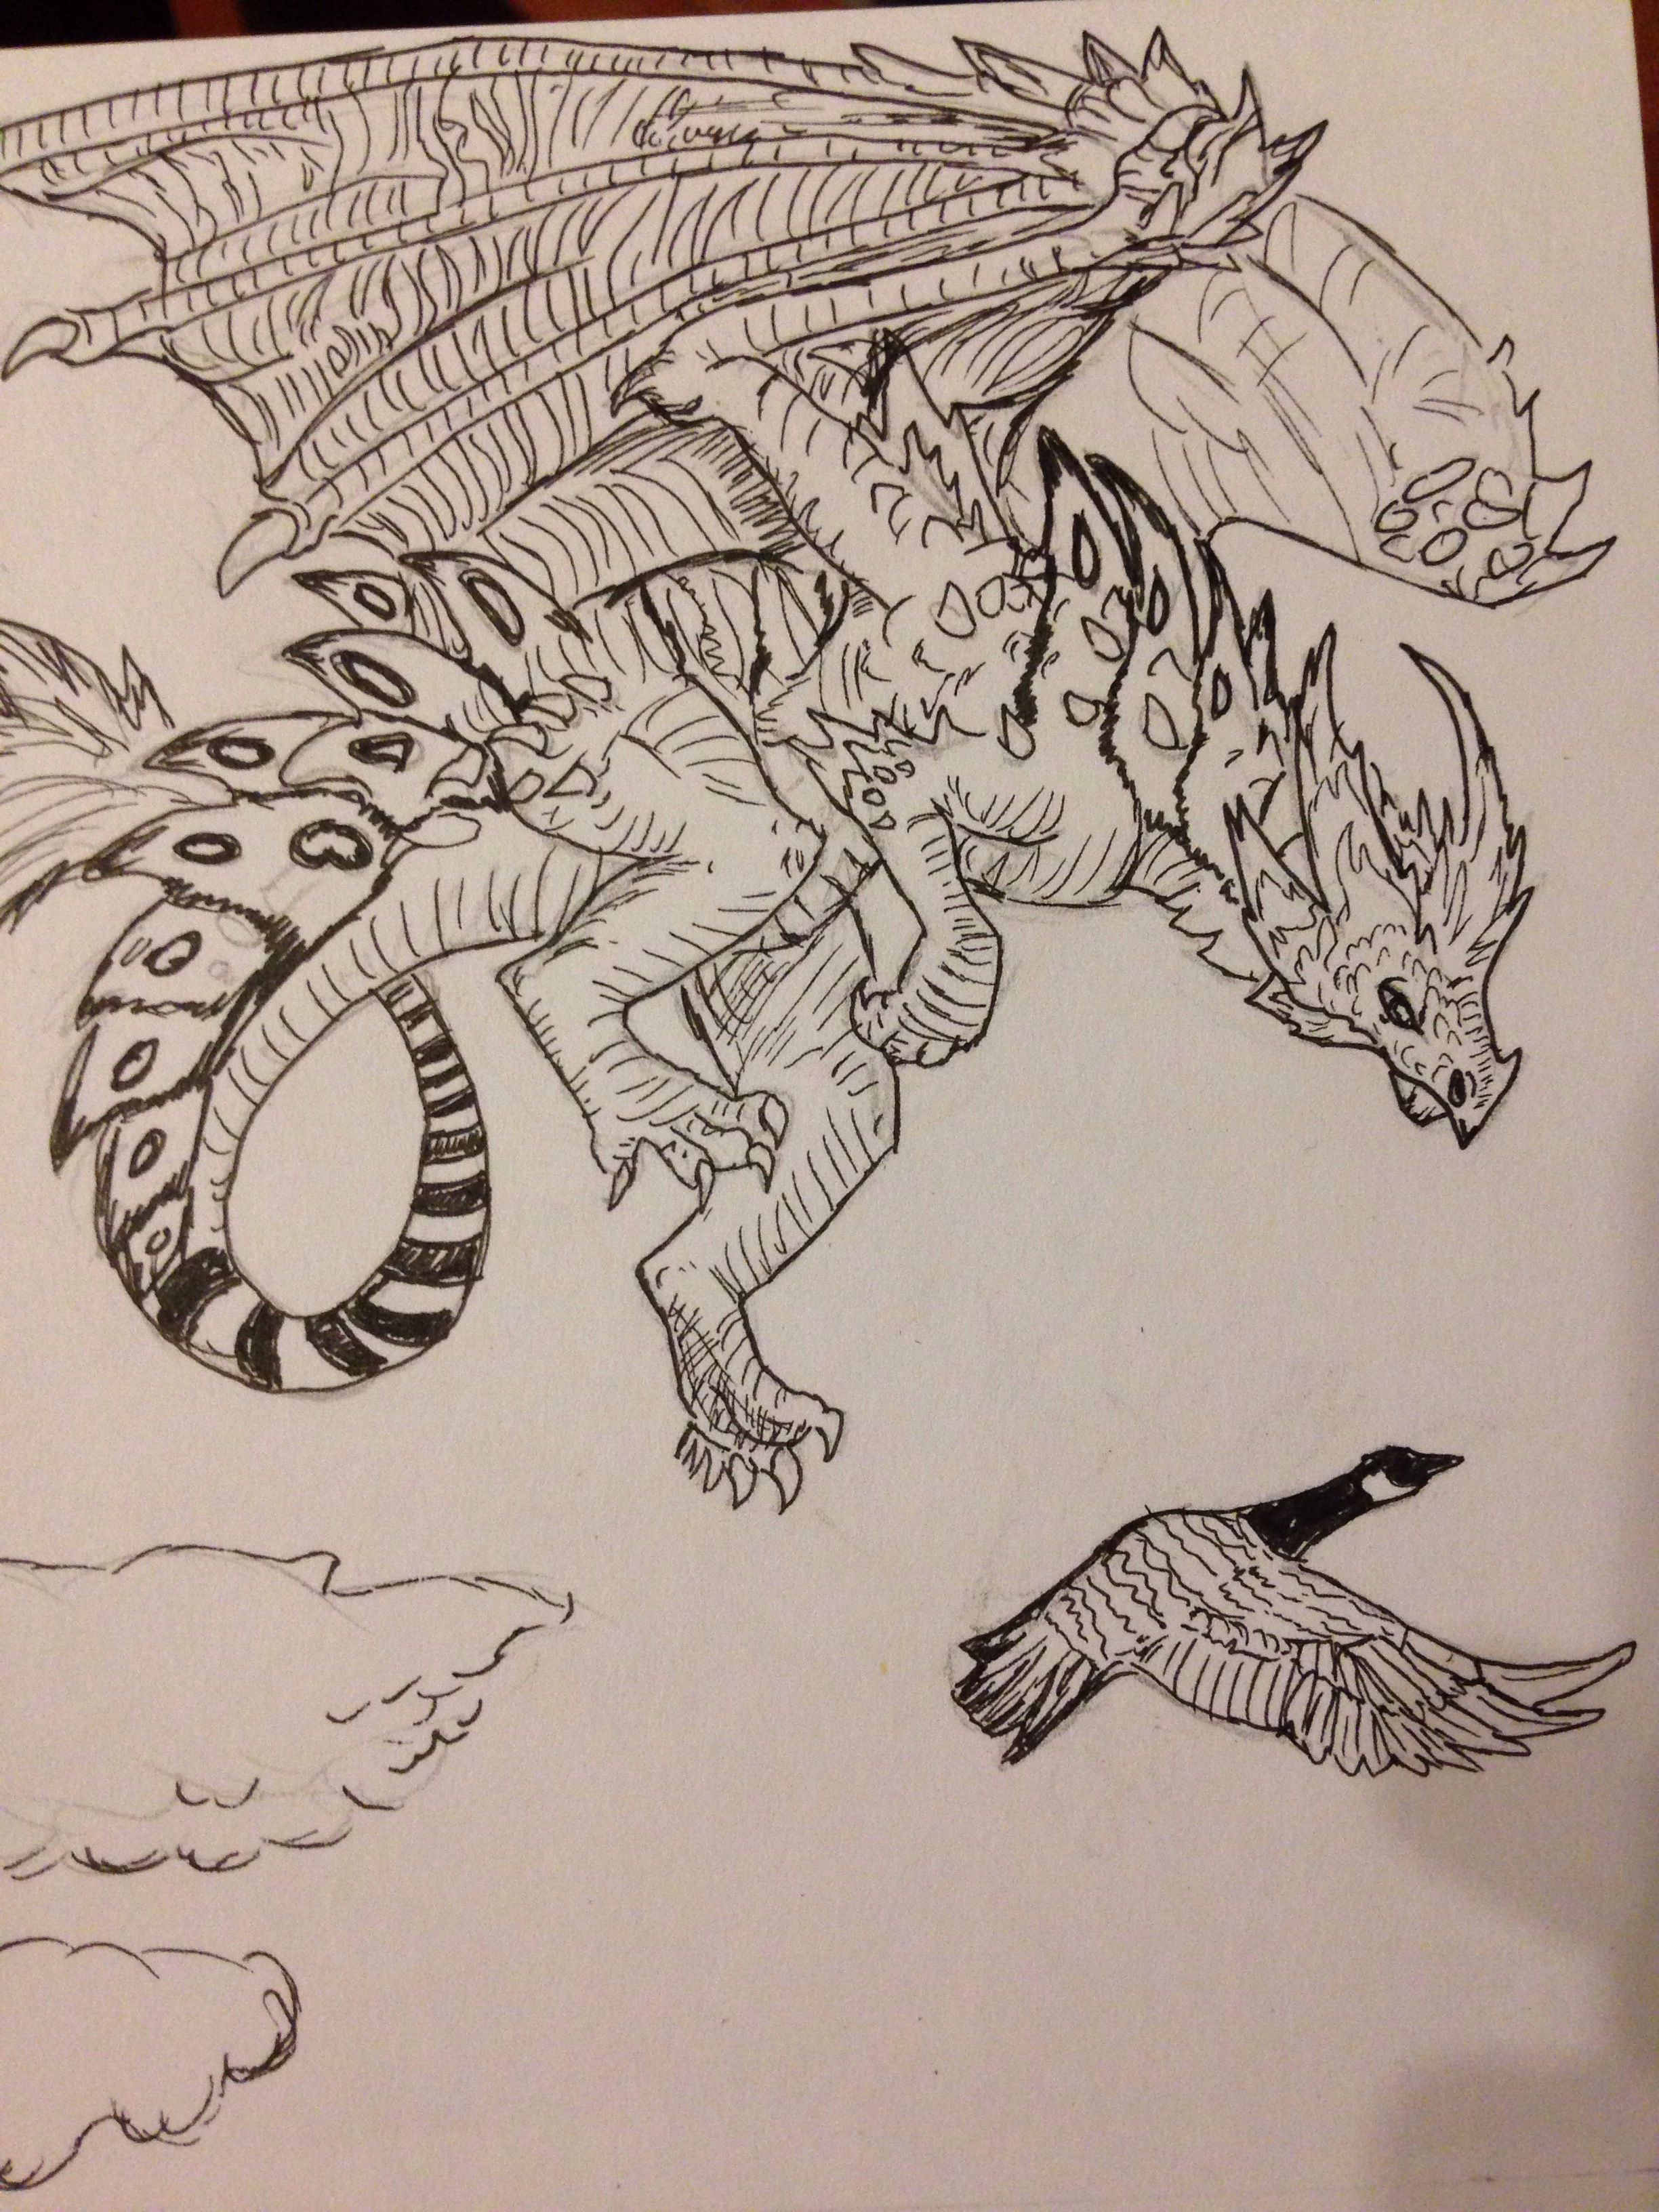 Dragon thinking about a goose dinner